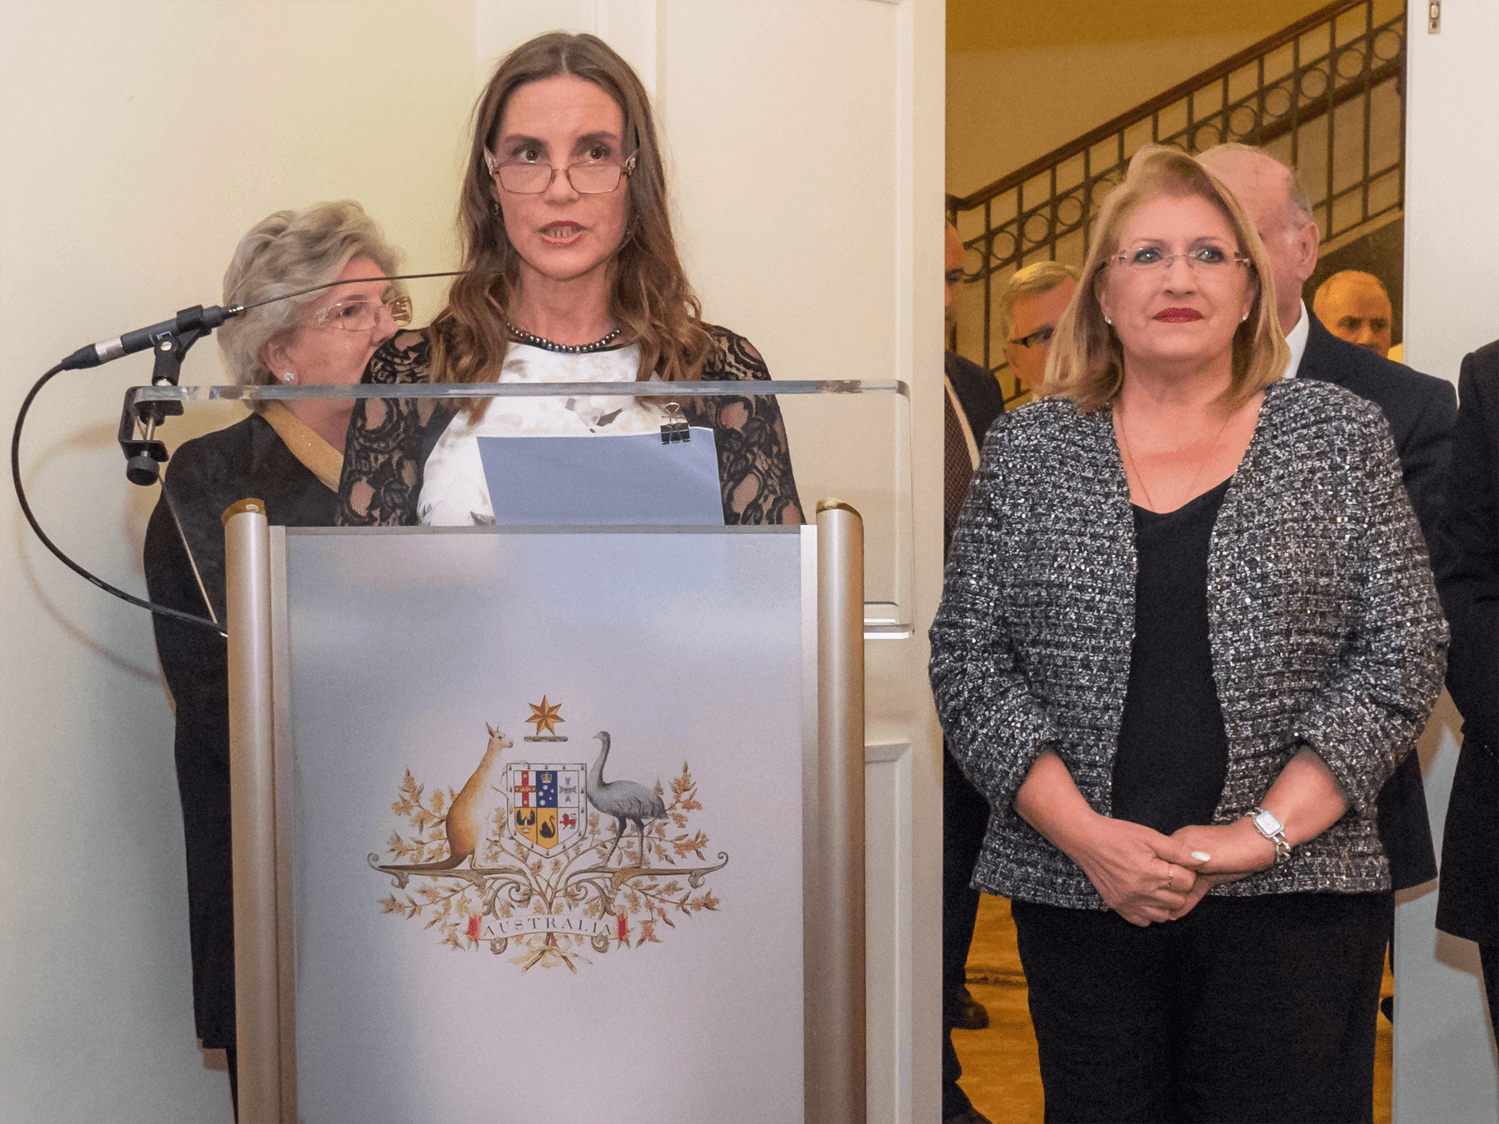 Australian High Commissioner to Malta Julienne Hince with Malta's President Marie-Louise Coleiro Preca, on Australia Day 2017.